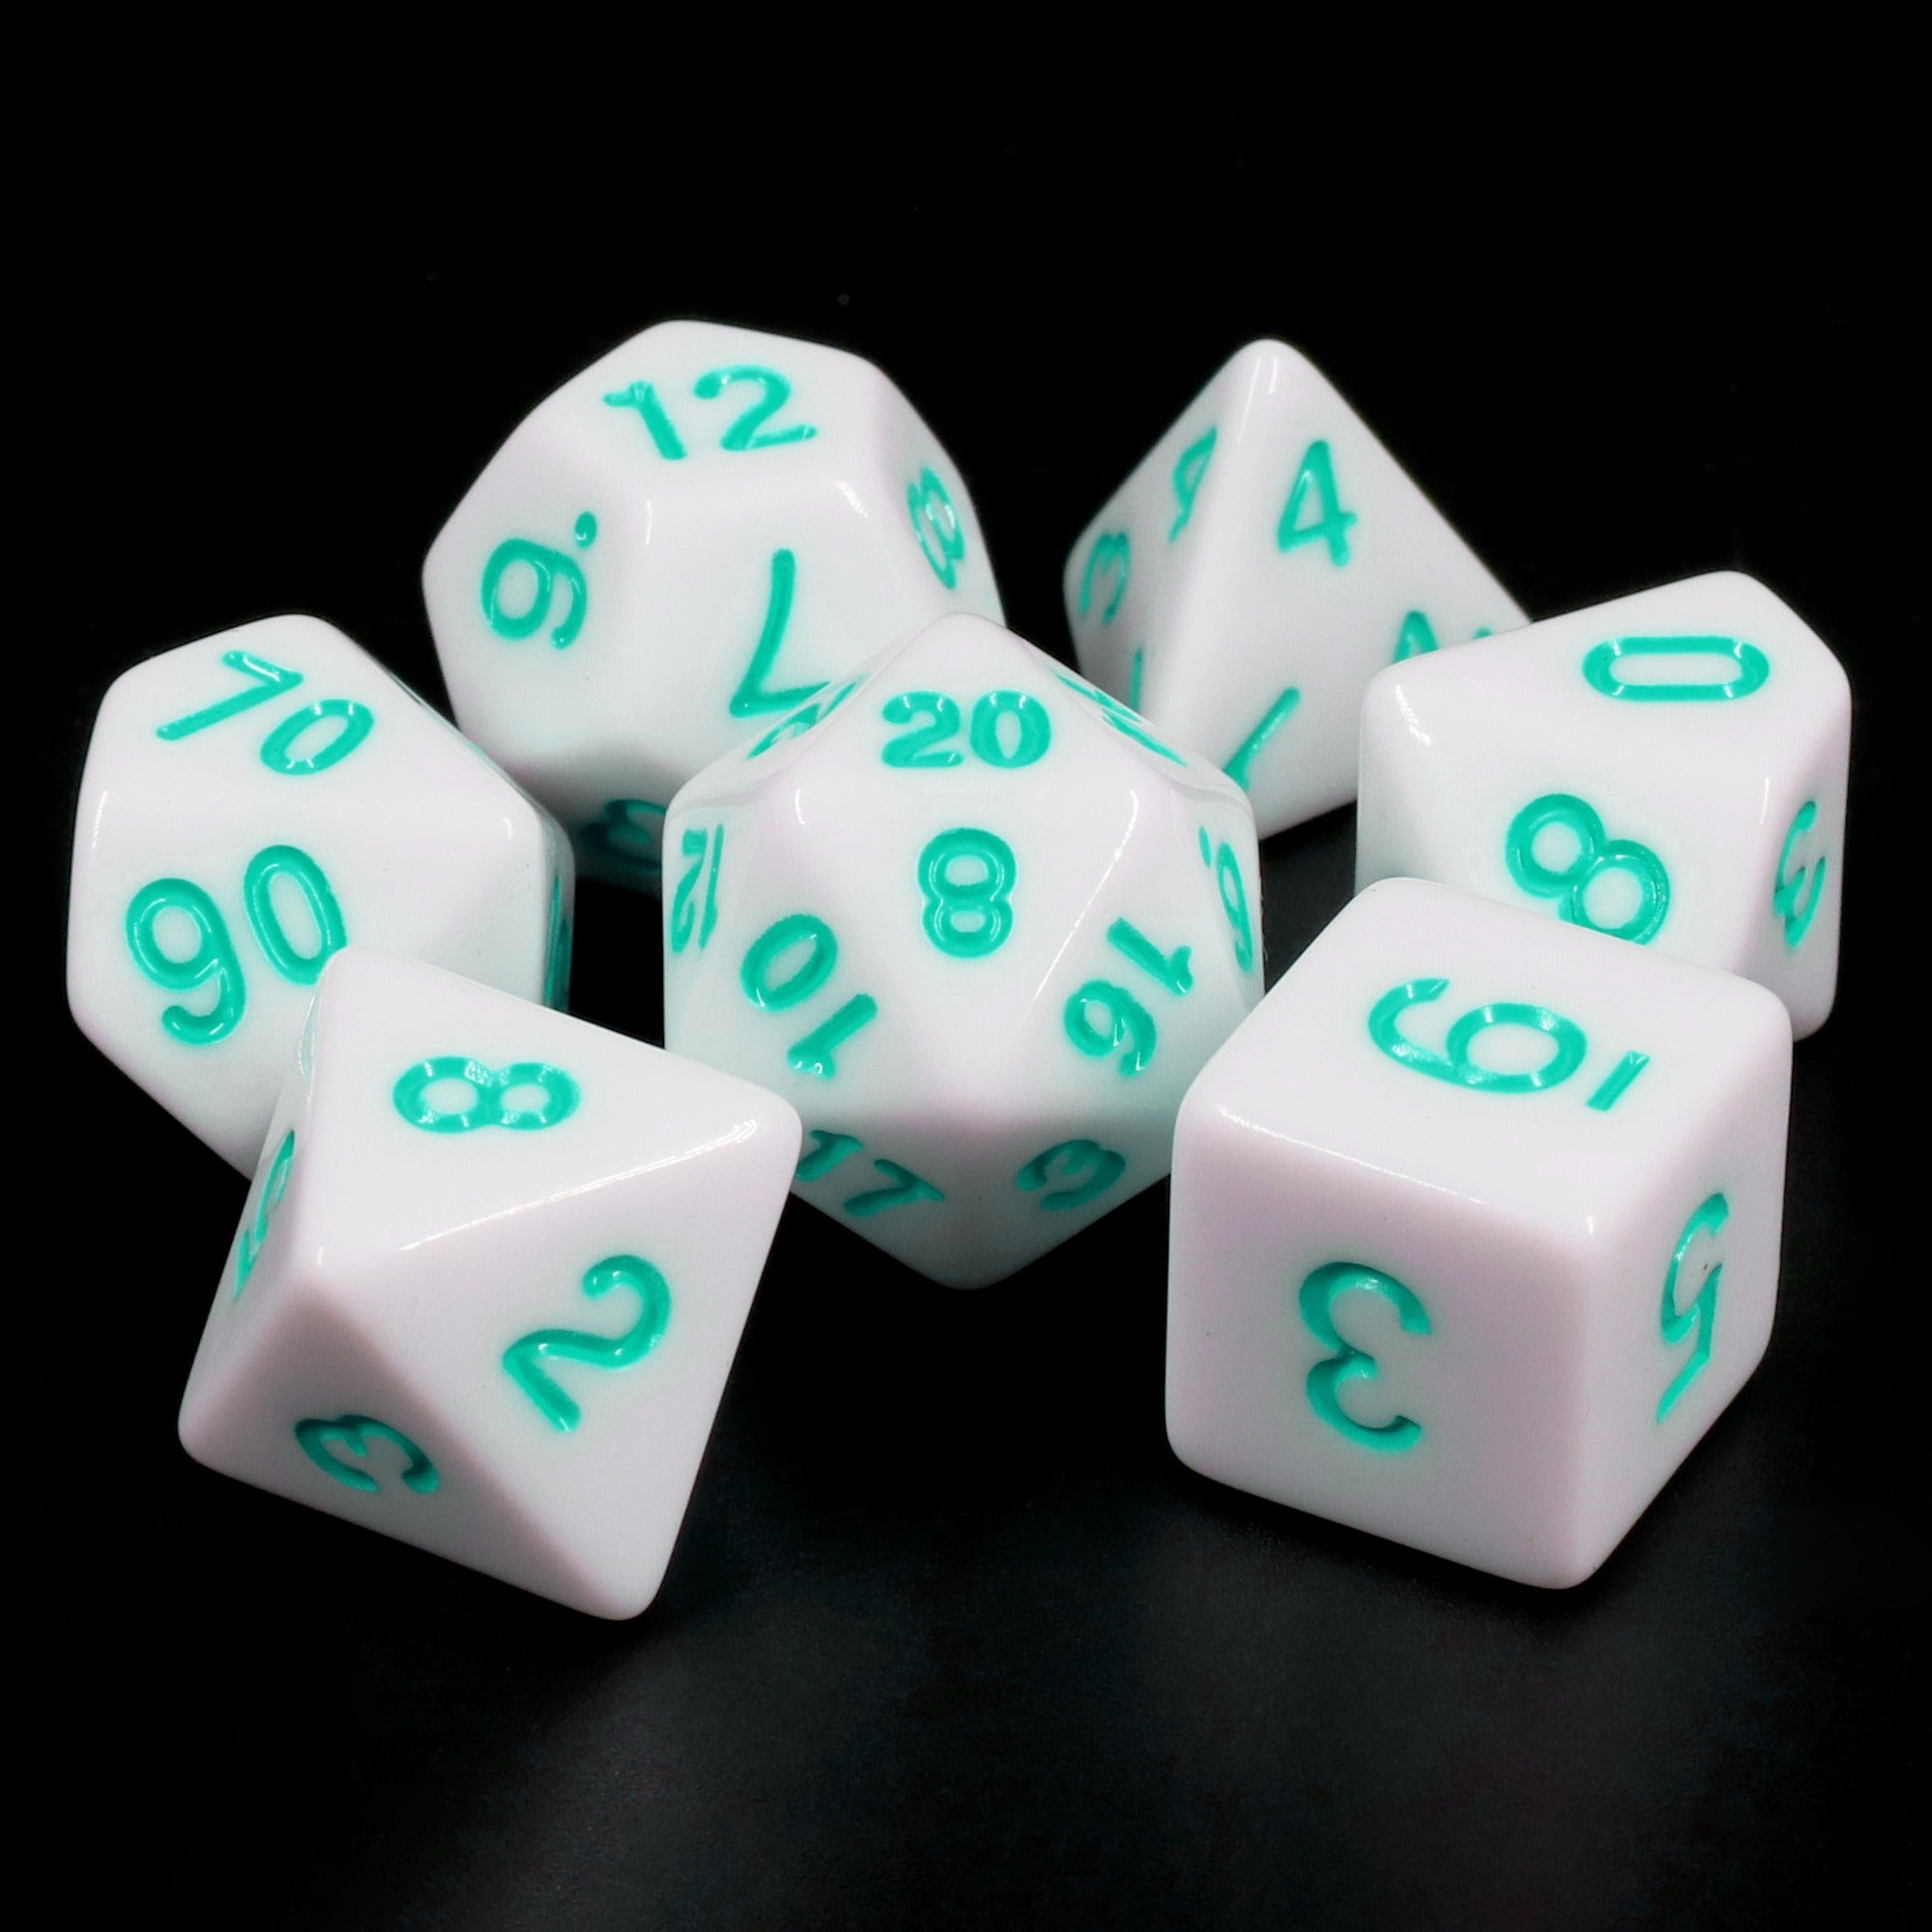 White Opaque dice (Teal font)